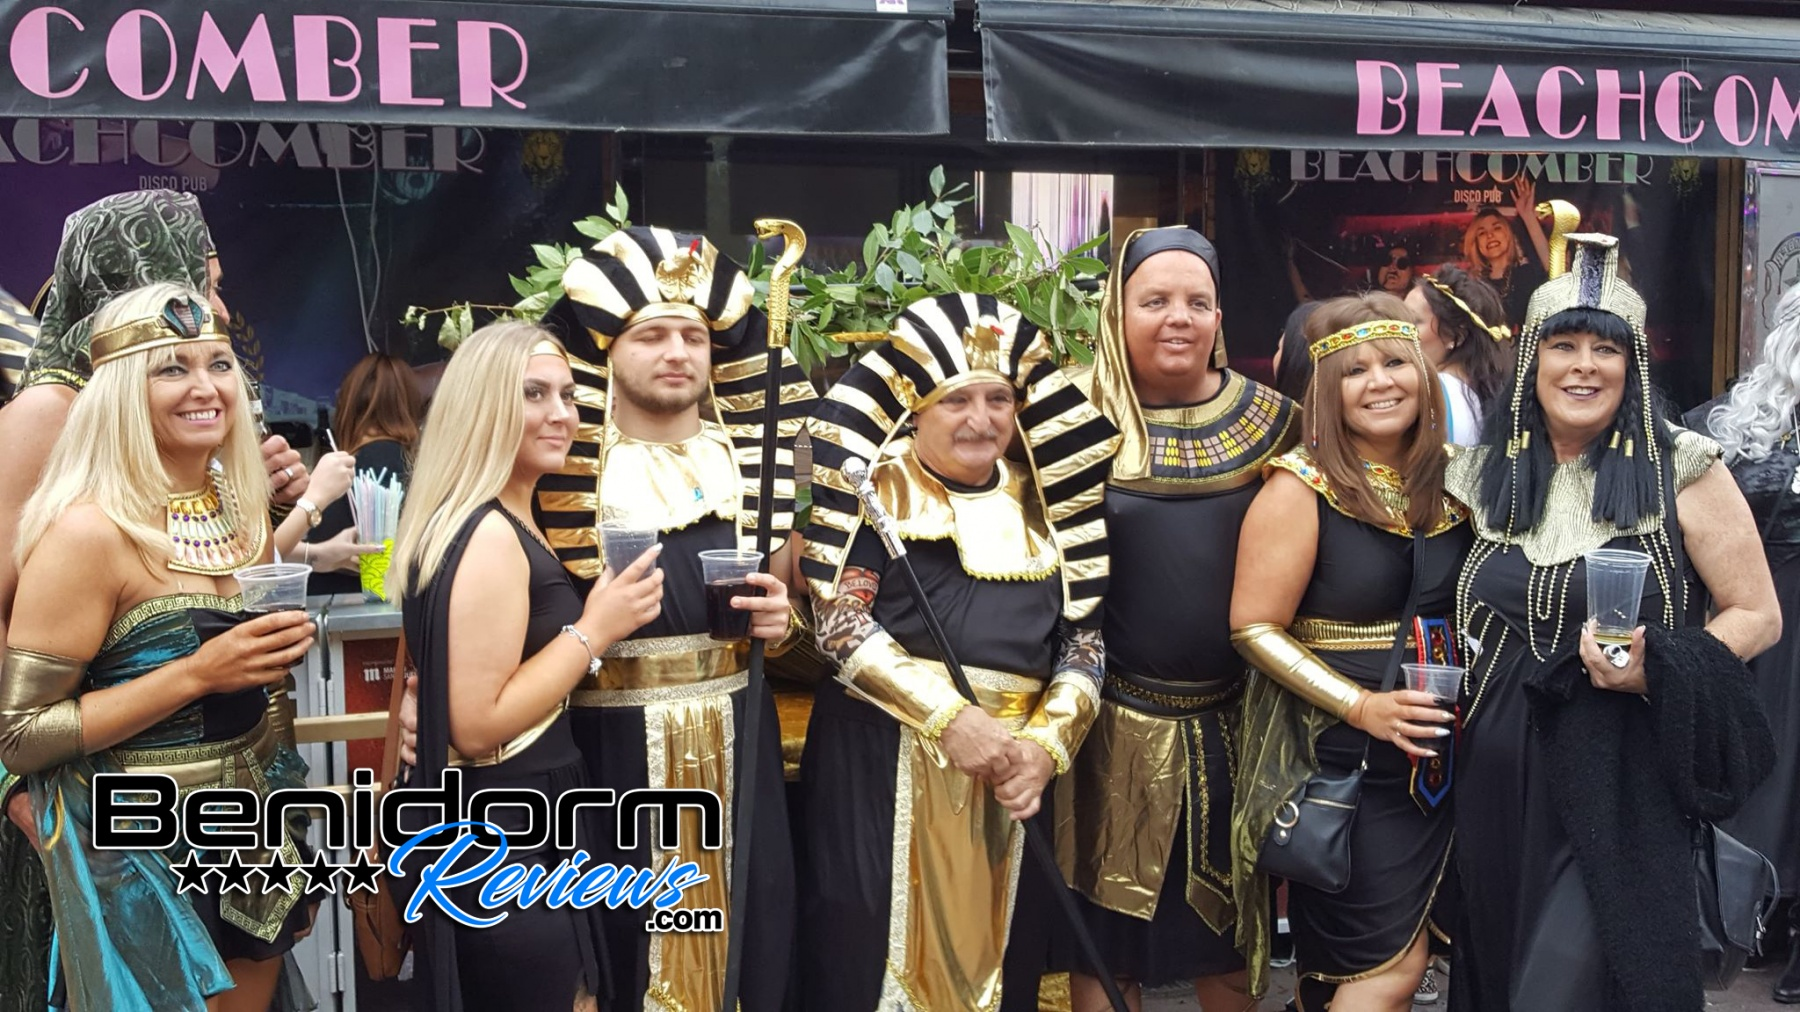 Benidorm-Fiestas-2019-Fancy-Dress-263